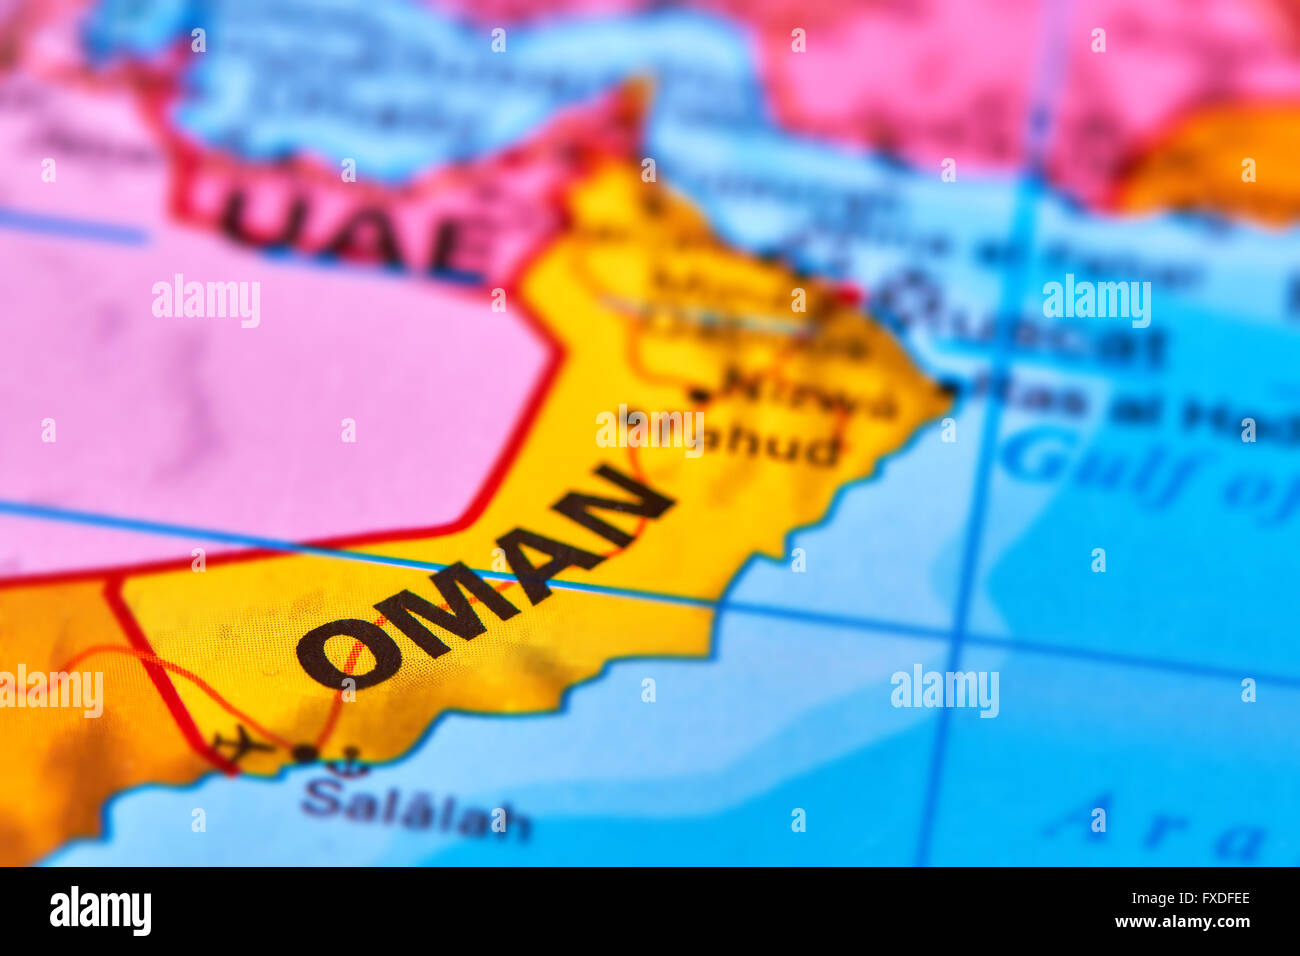 Oman Country In The Middle East On The World Map Stock Photo - Oman in world map